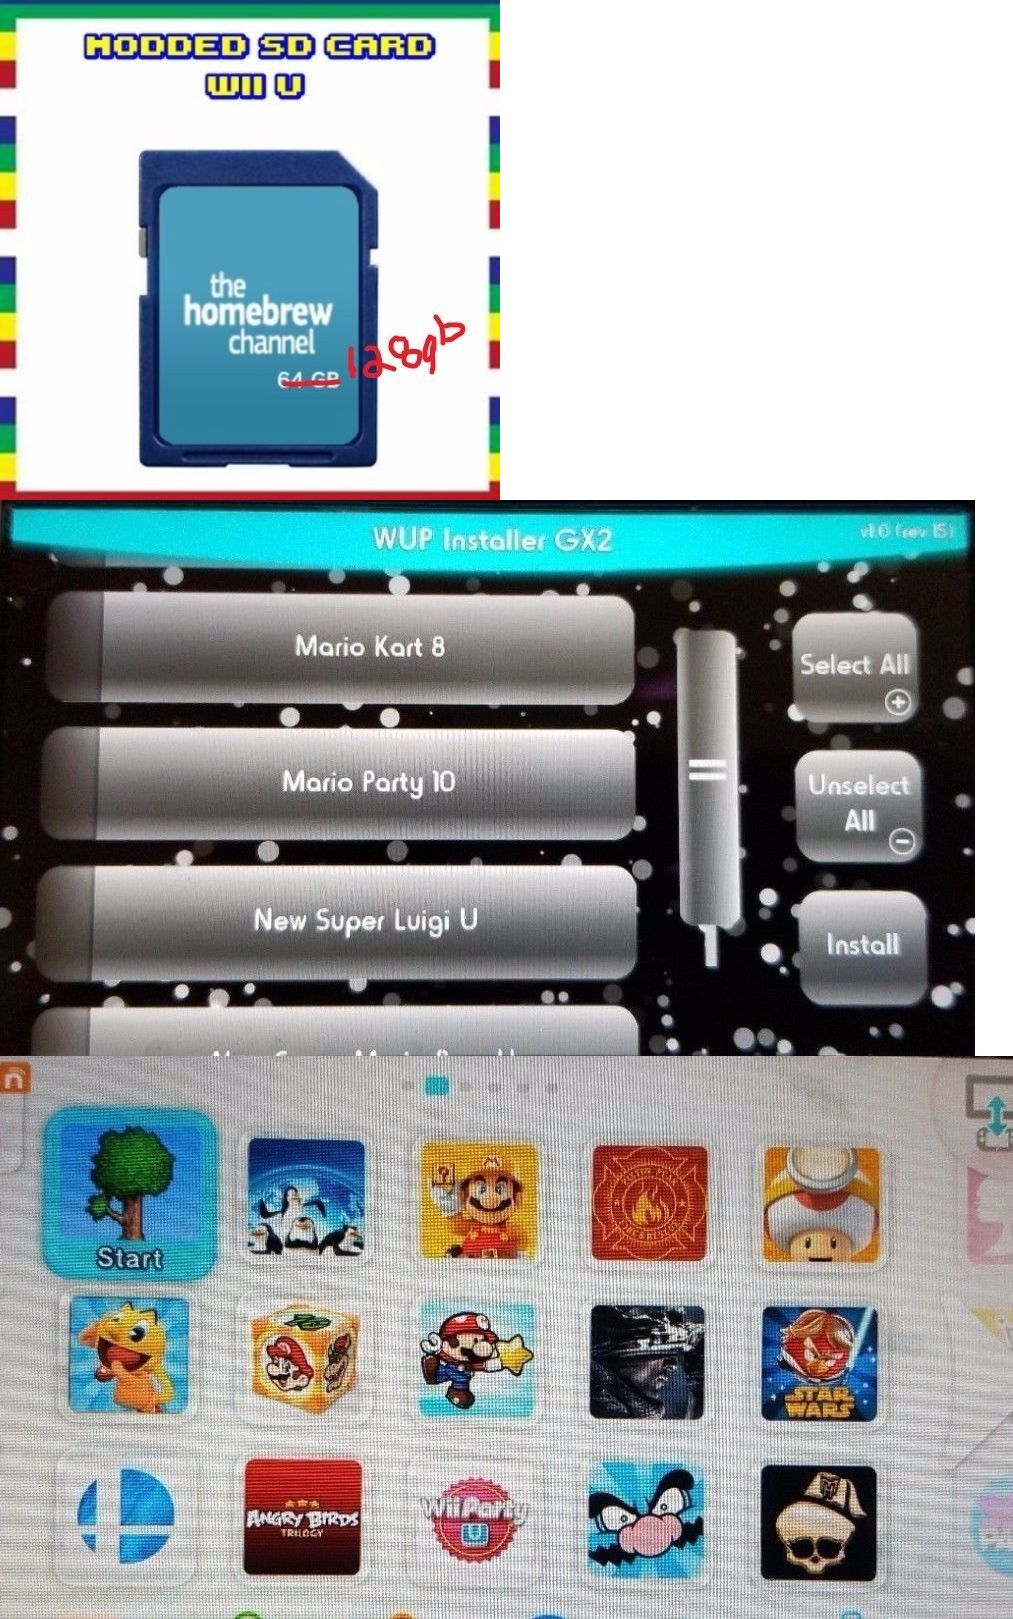 Wii channel on wii u